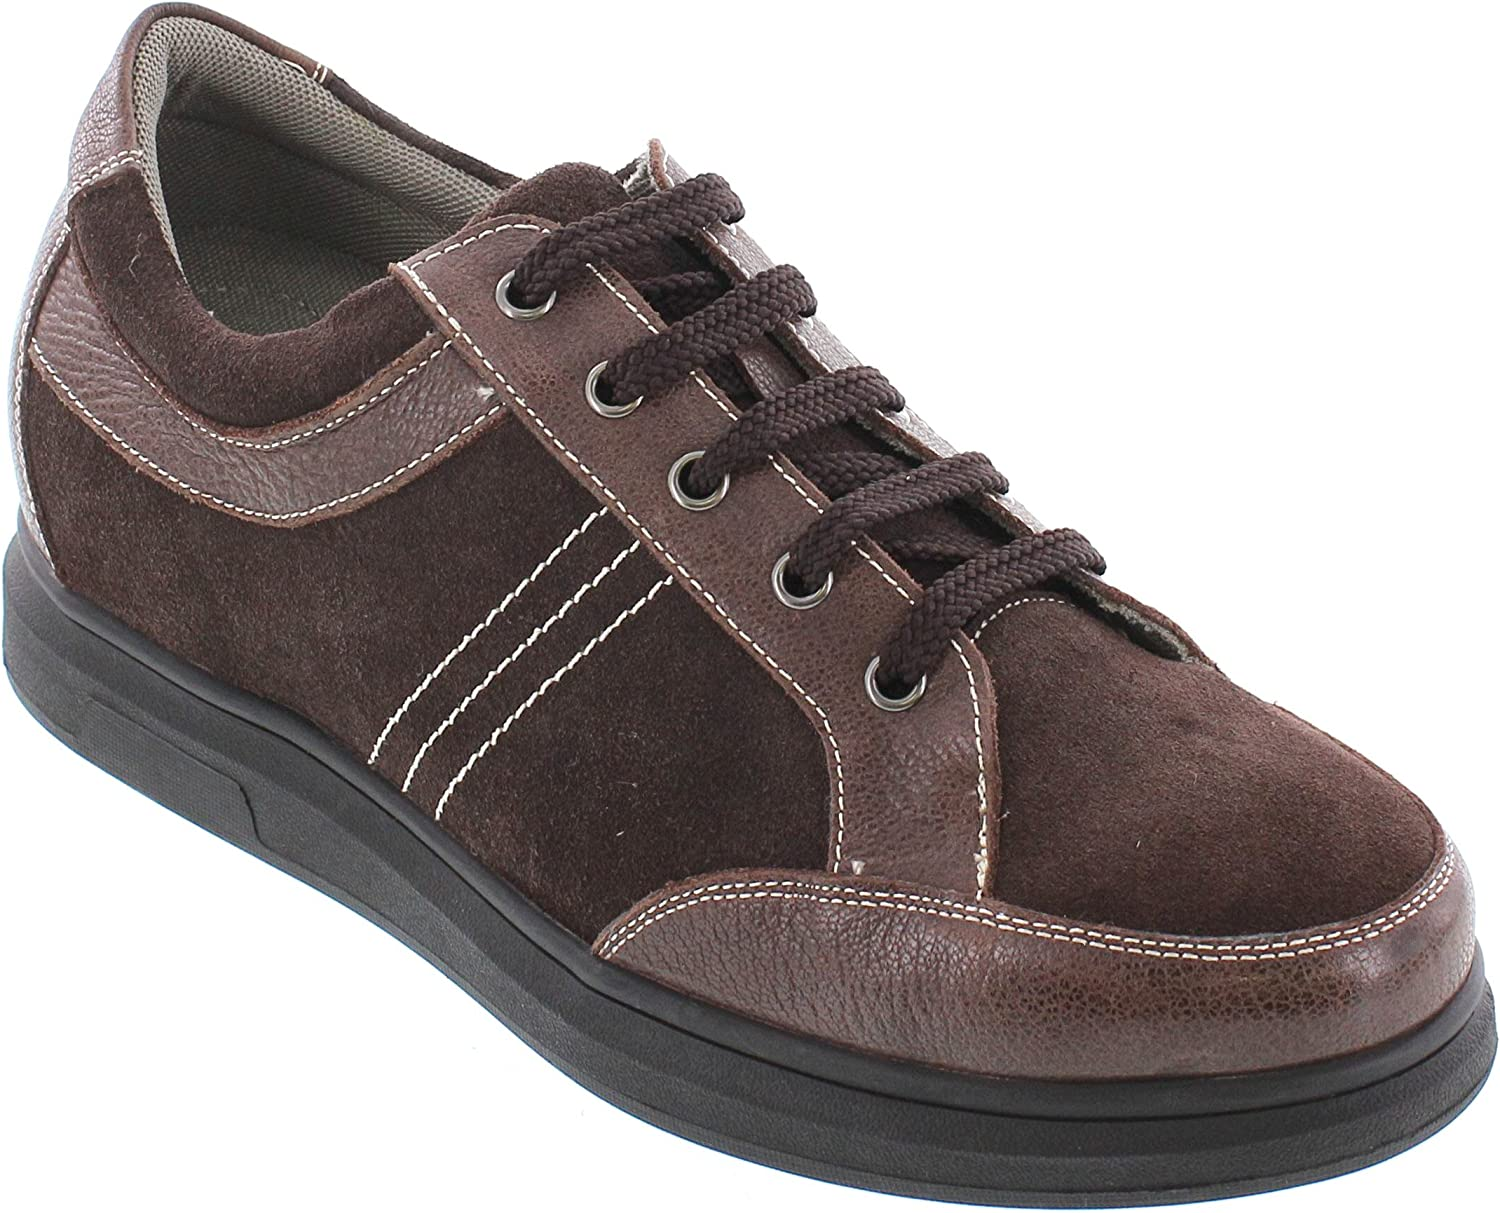 CALTO Men's Invisible Height Increasing Elevator shoes - Brown Suede Leather Lace-up Casual Sneakers - 2.6 Inches Taller - J98022